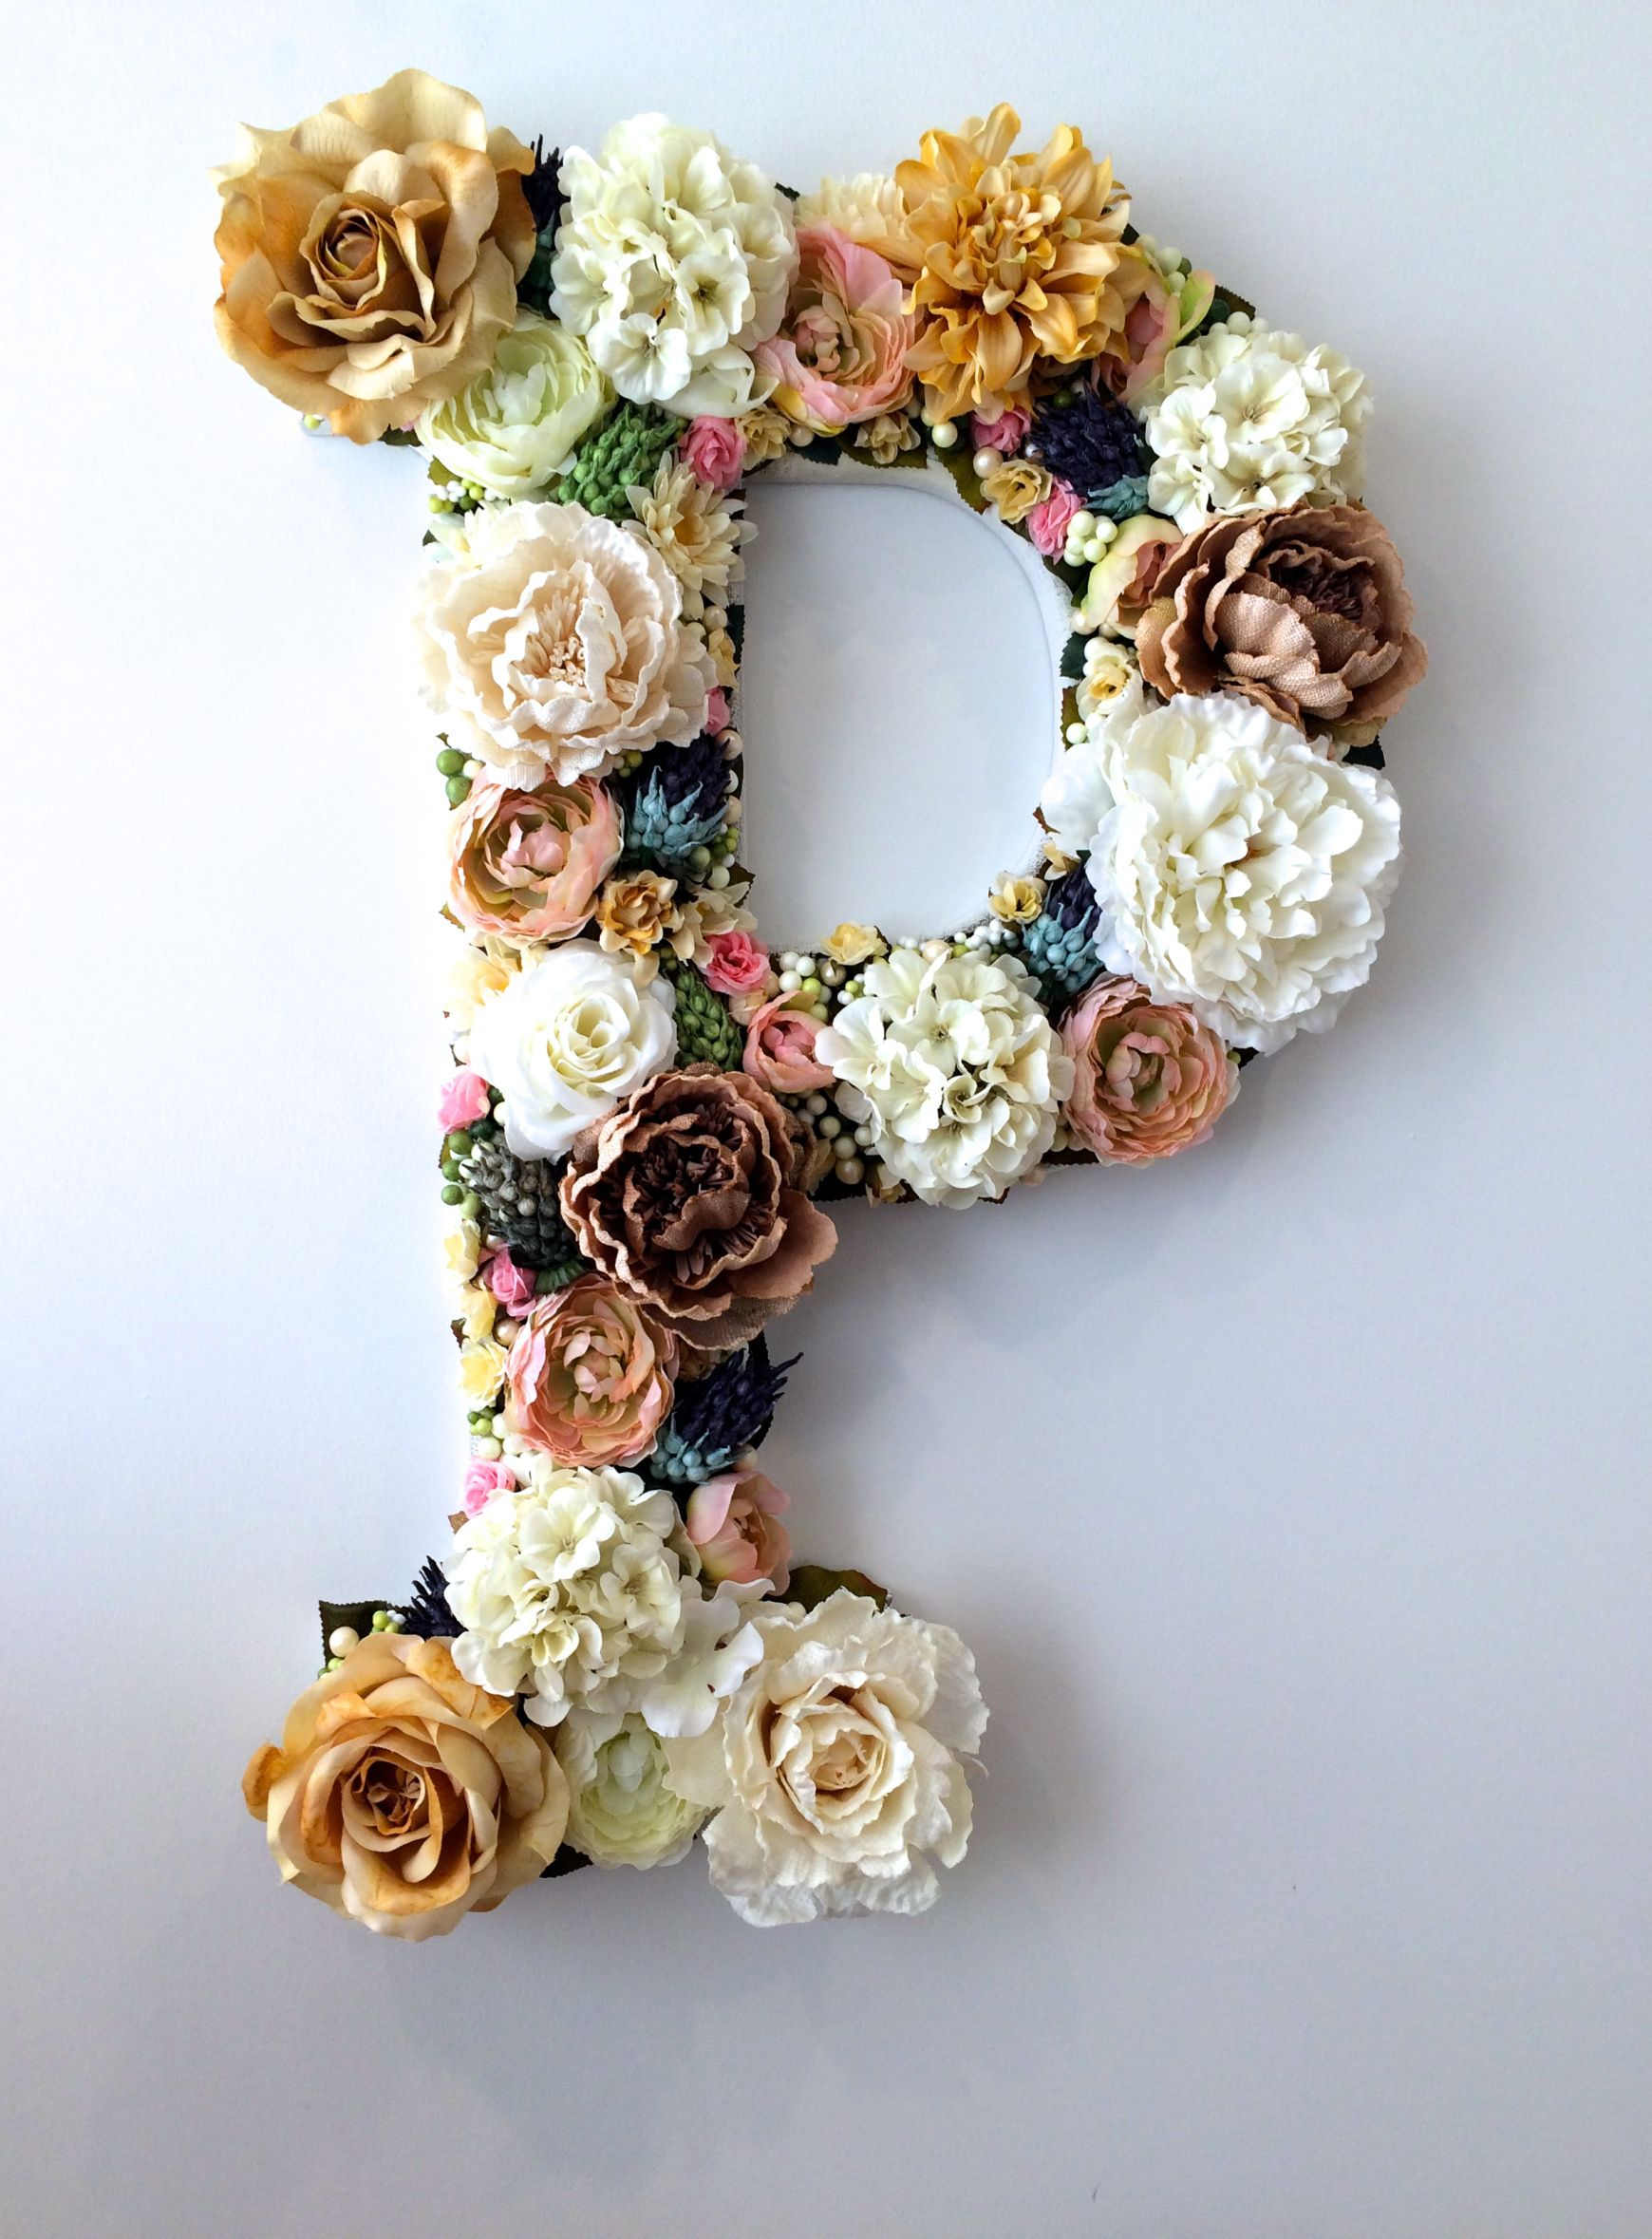 Cool Glue Gun Crafts And DIY Projects   DIY Flower Letter   Creative Ways  To Use Your Glue Gun For Awesome Home Decor, DIY Gifts , Jewelry And  Fashion   Fun ...